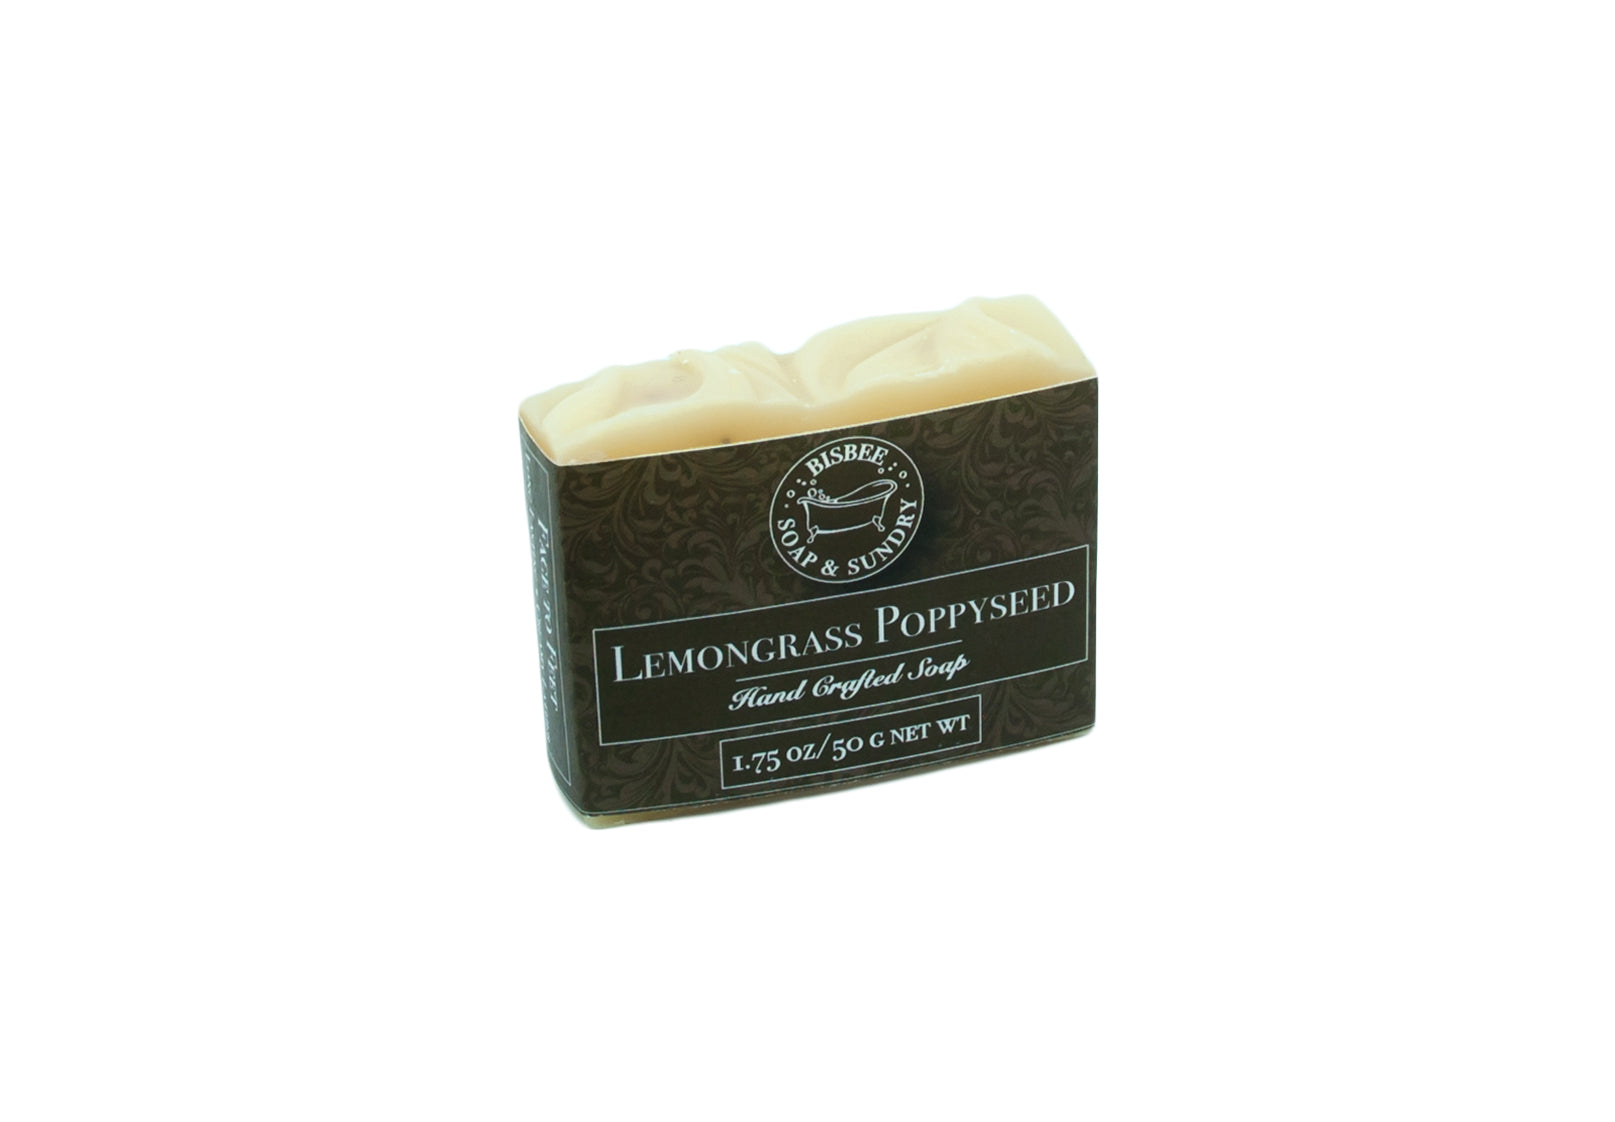 Lemongrass Poppyseed Handmade Mini Soap